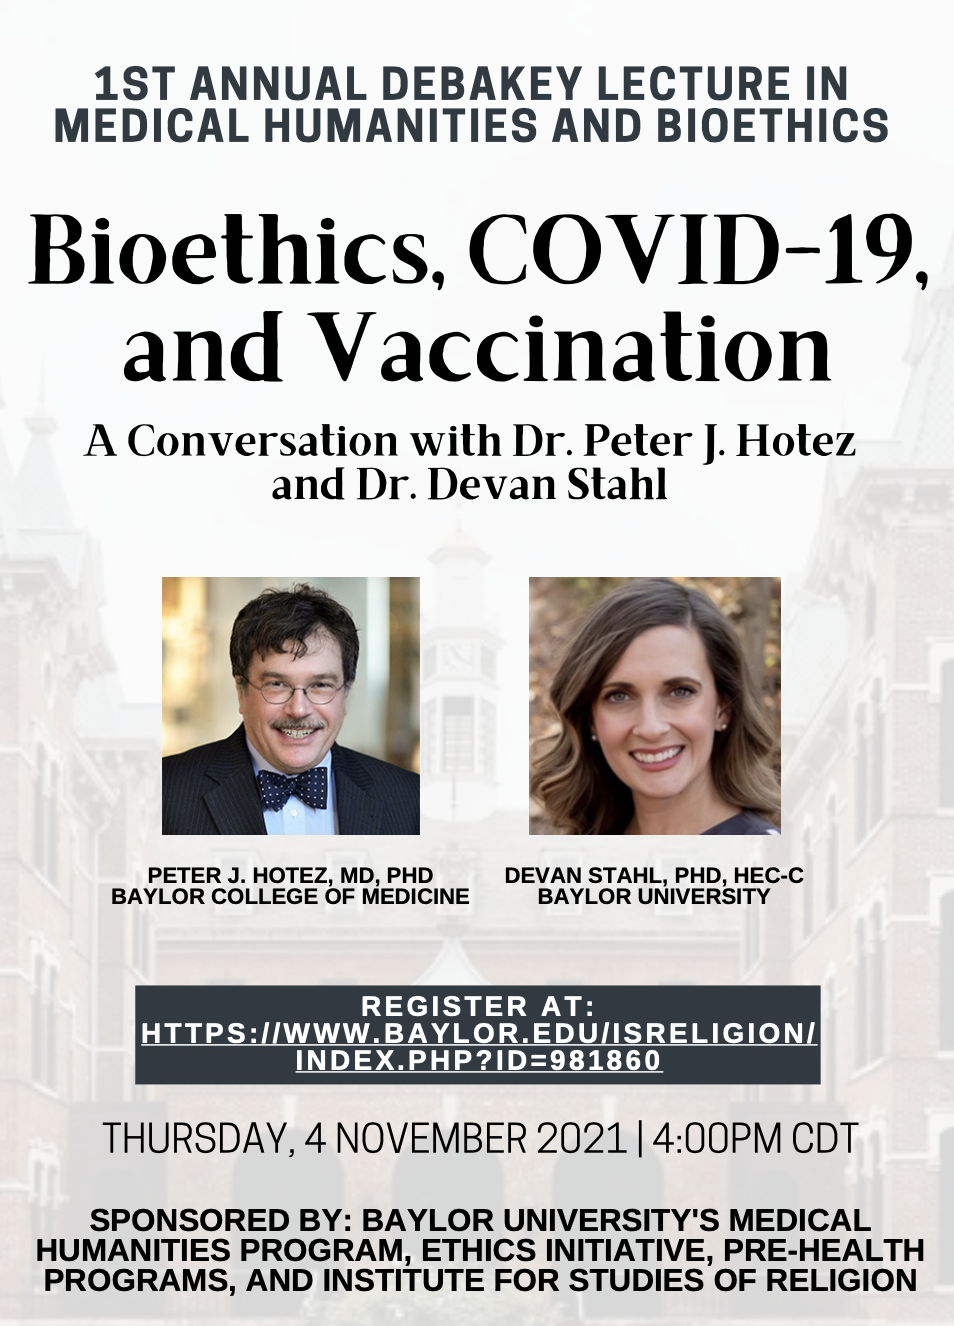 Bioethics, COVID-19, and Vaccination